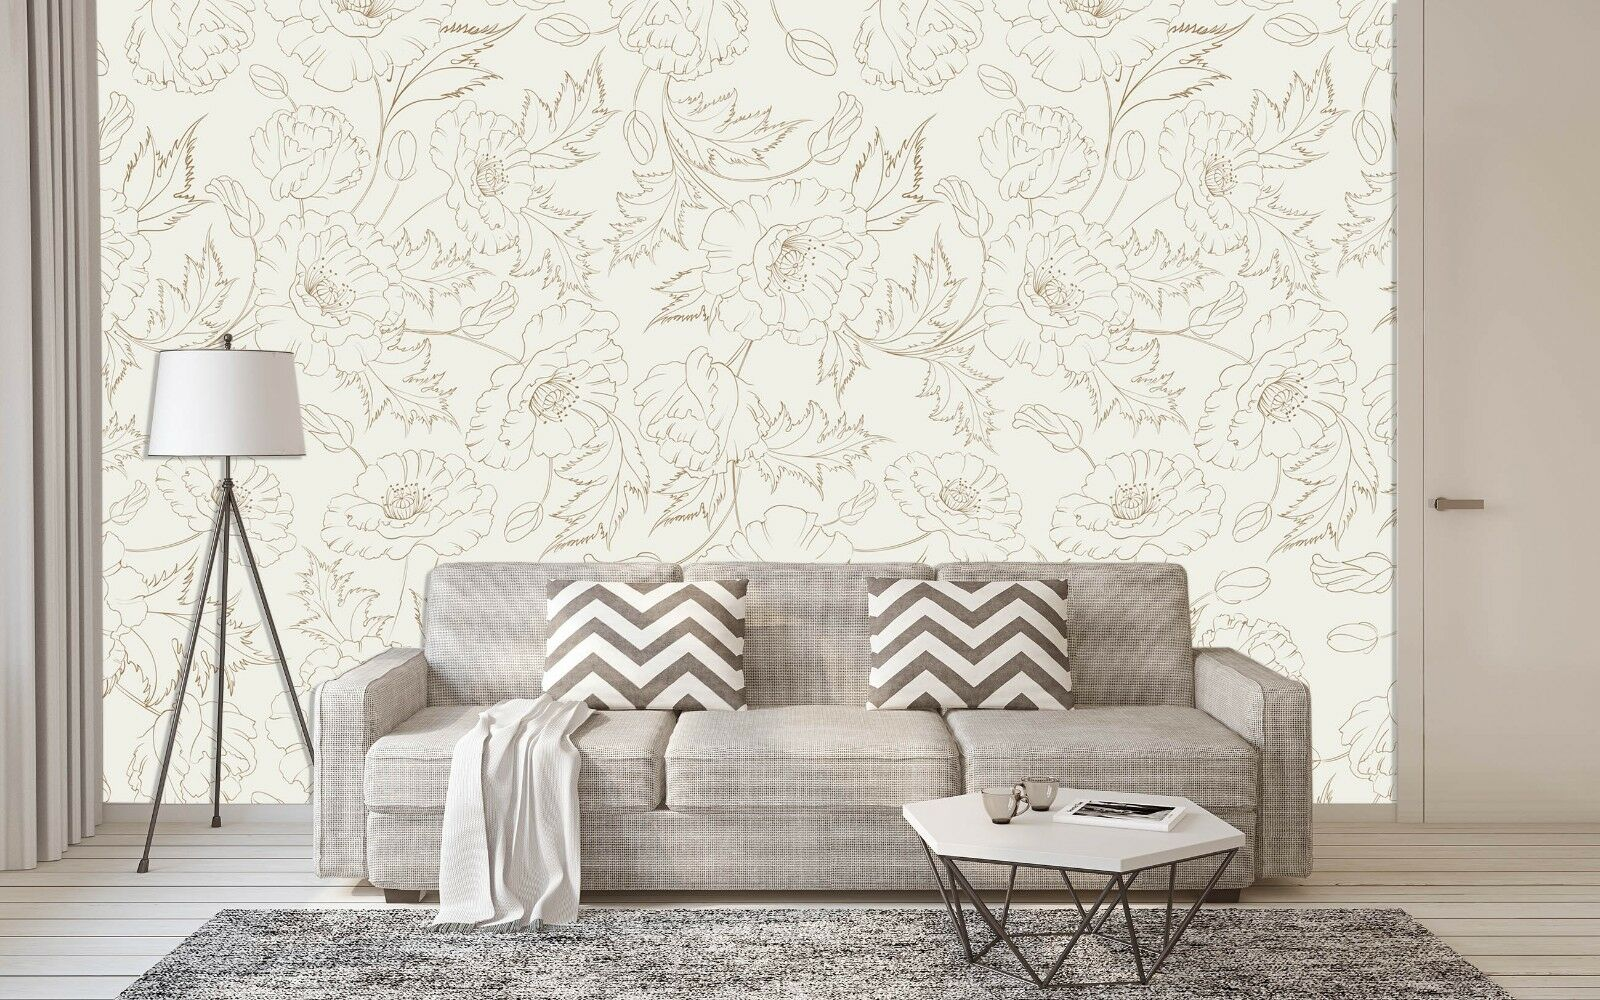 3D Hand Painted Flowers 42 Wall Paper Wall Print Print Print Decal Wall Deco Indoor Murals 84f735